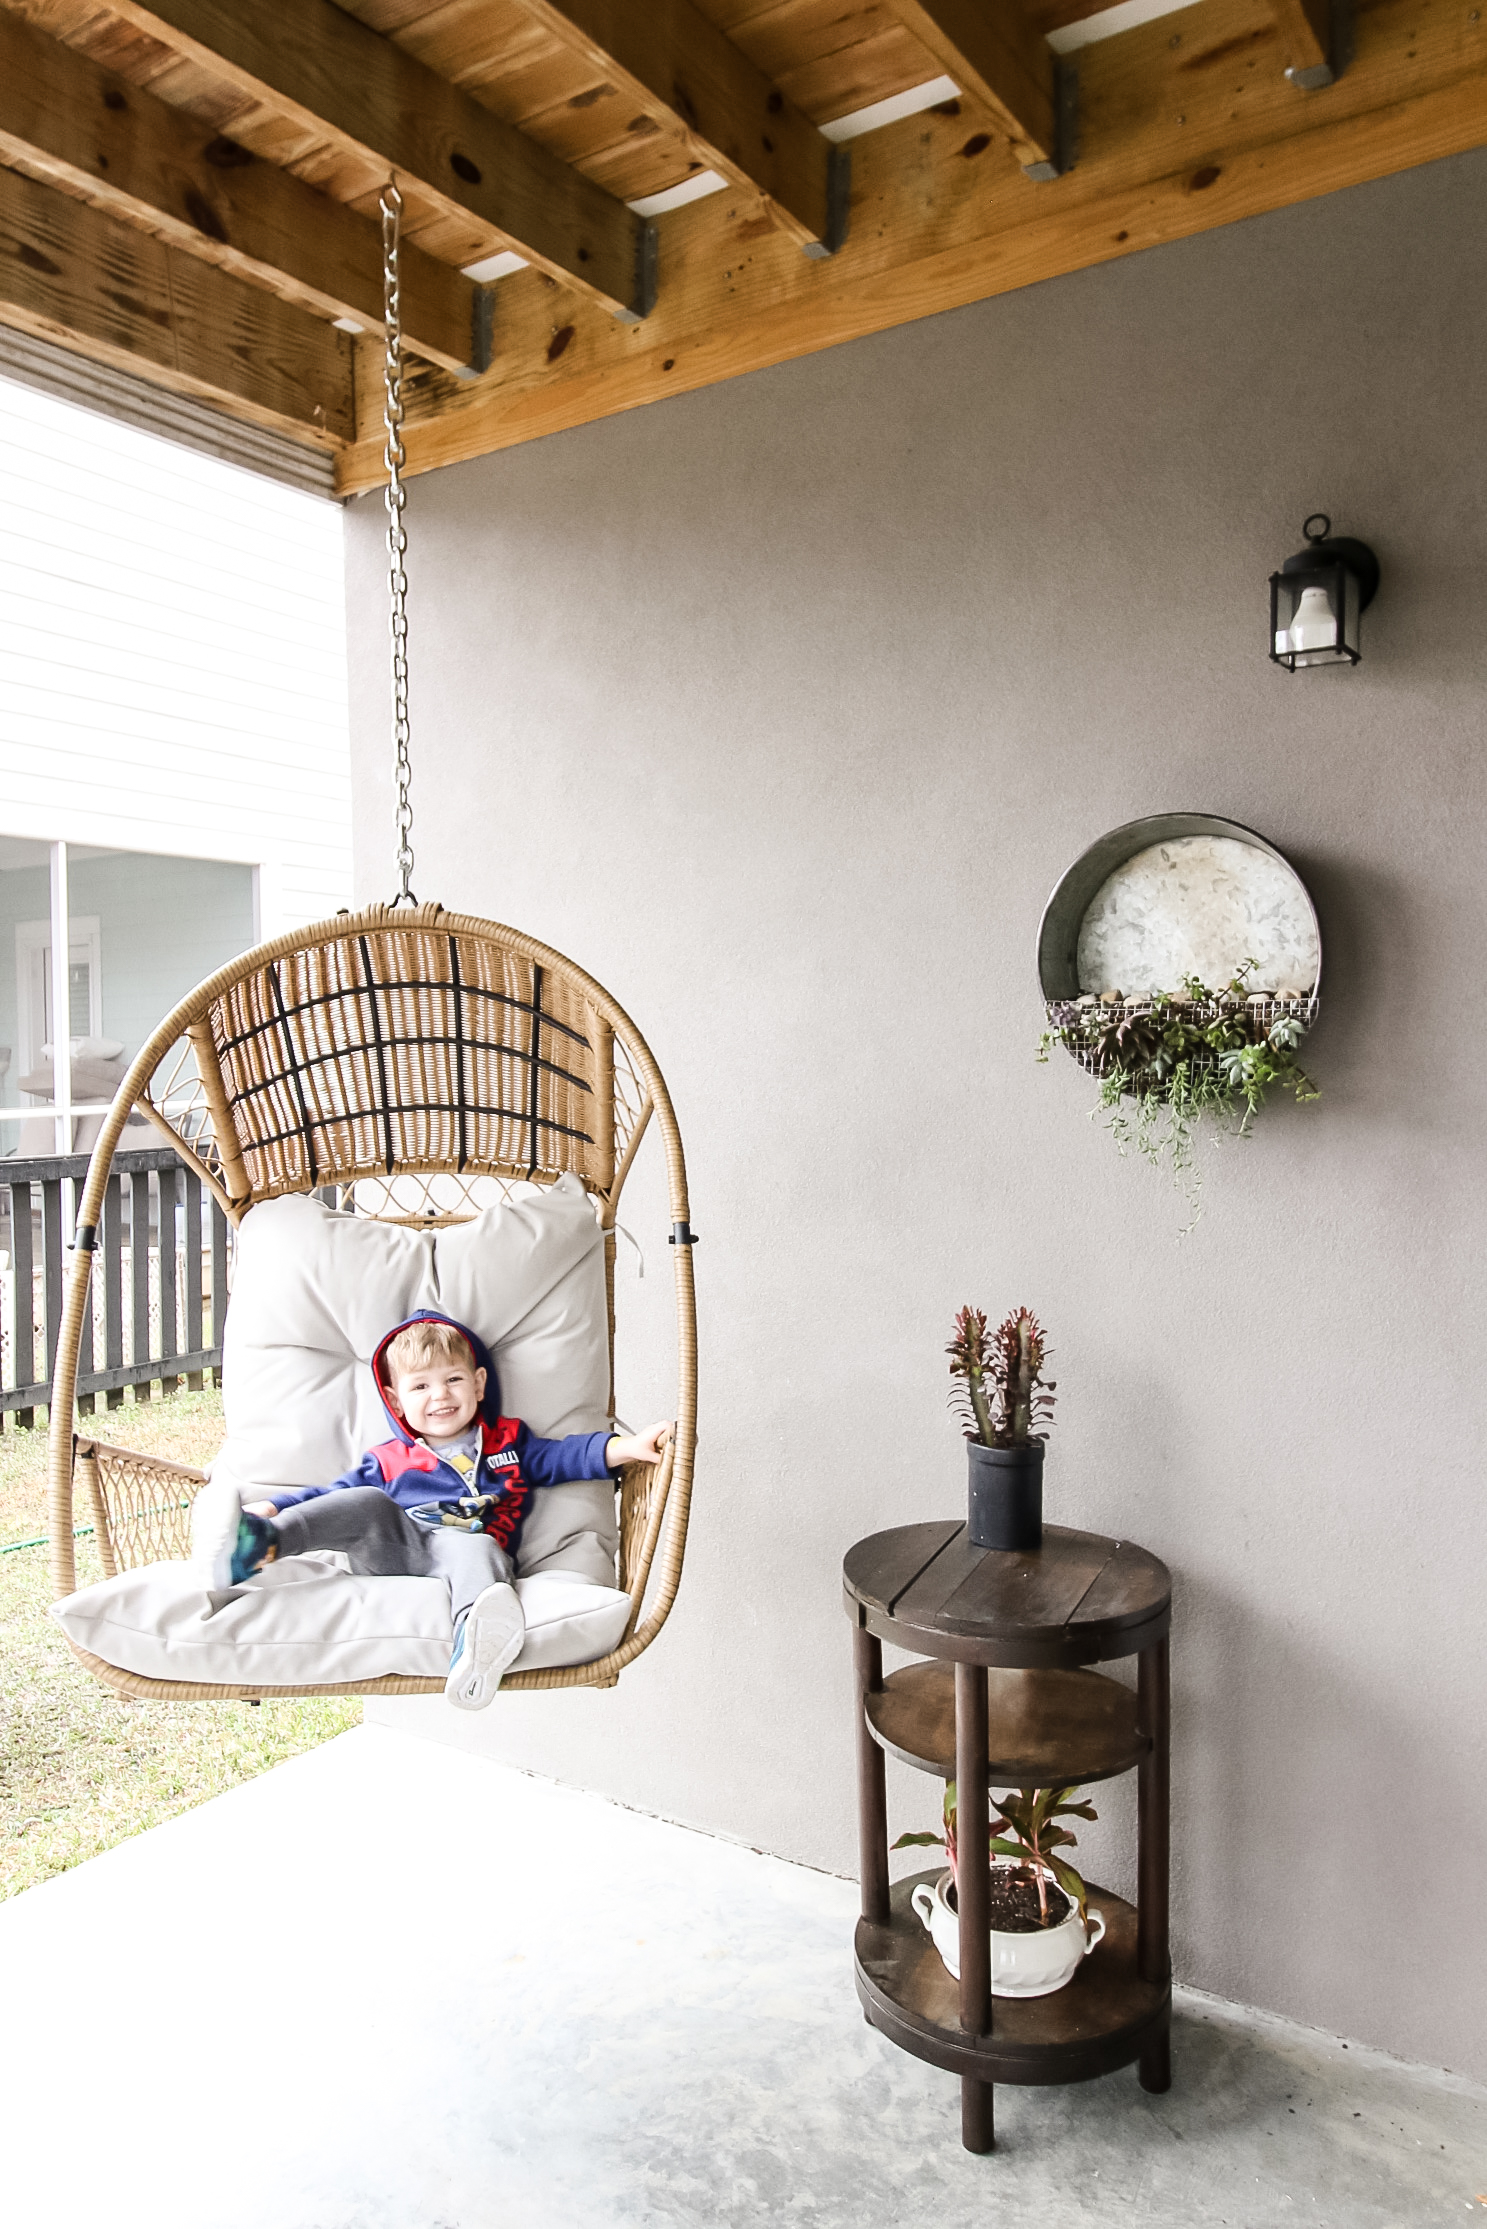 hanging swing on a covered patio